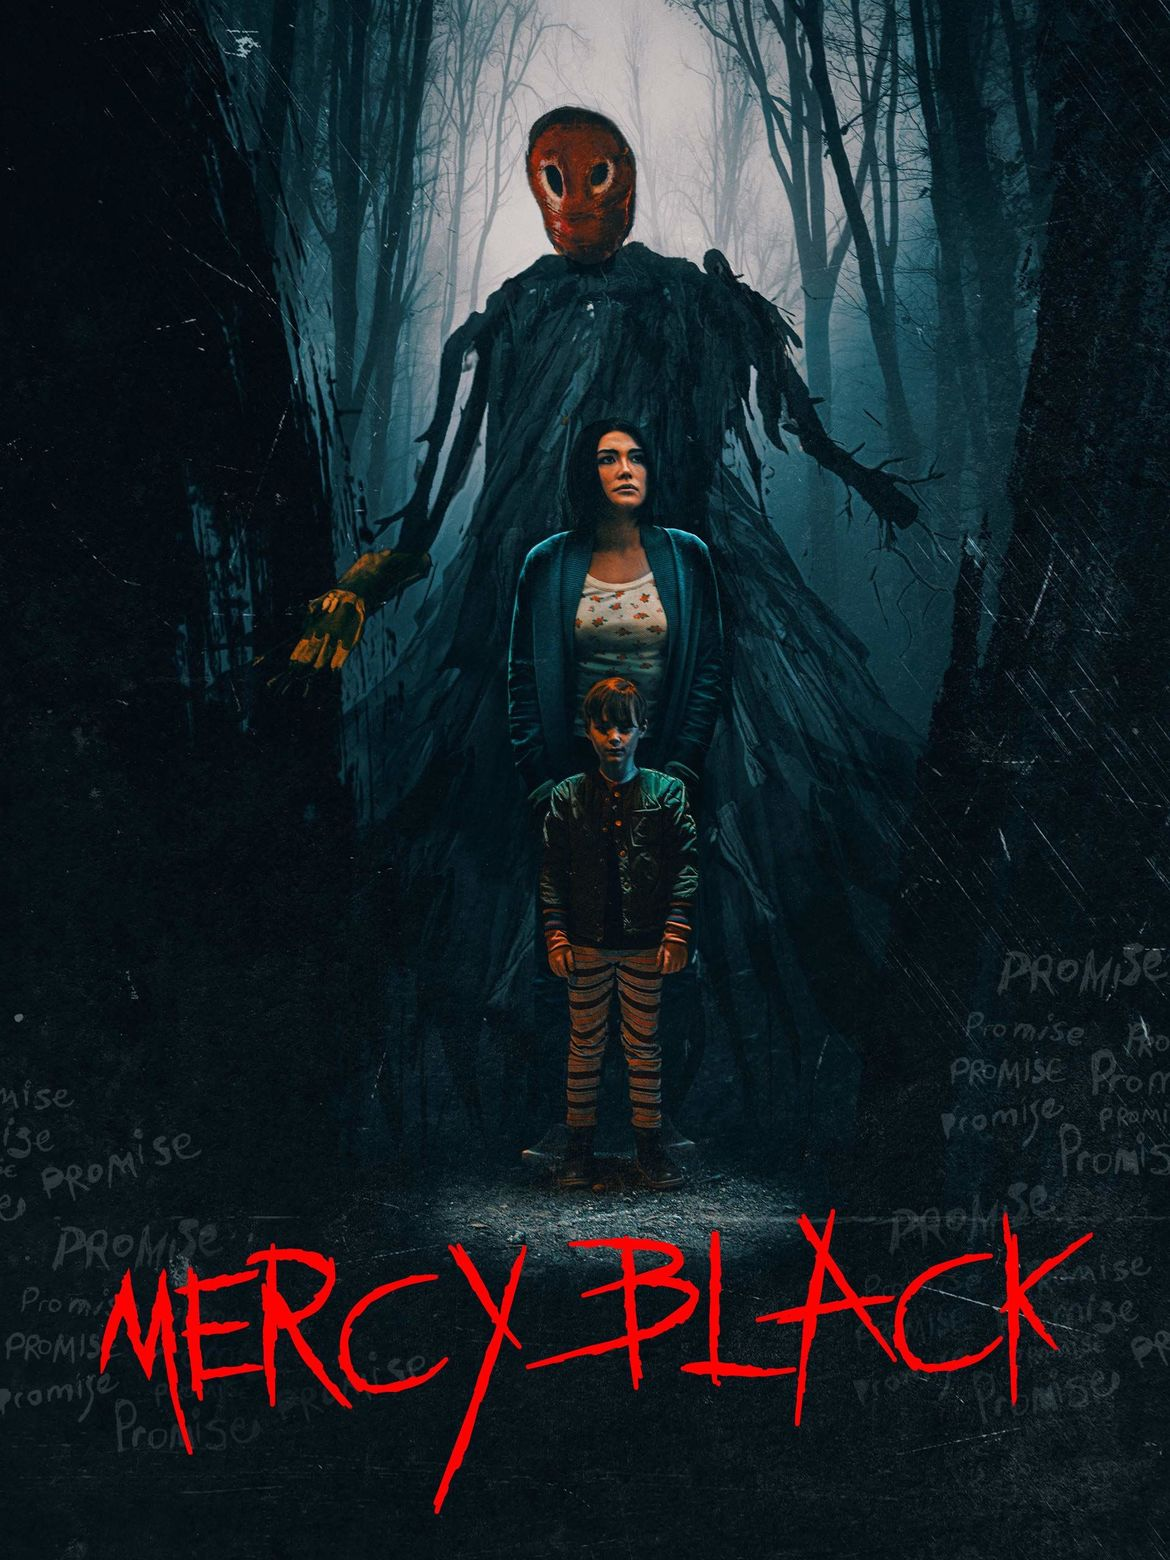 Mercy Black, Netflix and Blumhouse's surprise release, is